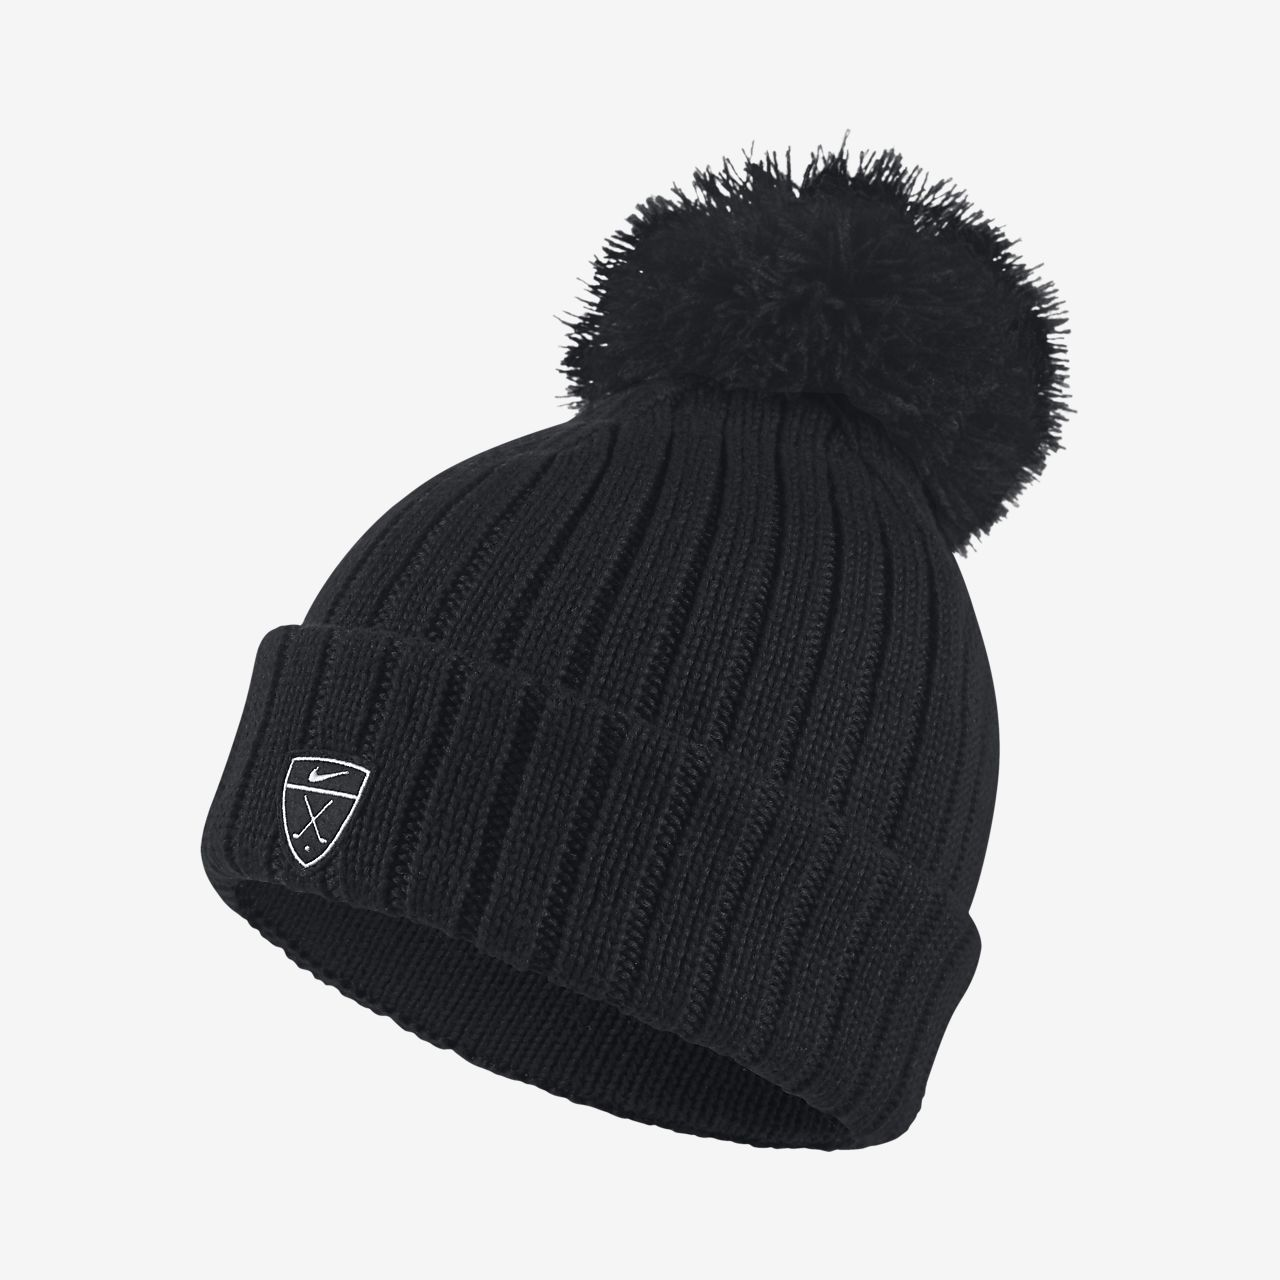 569fc ed427 nike golf wool knit hat website for discount ... 5cddd0e36